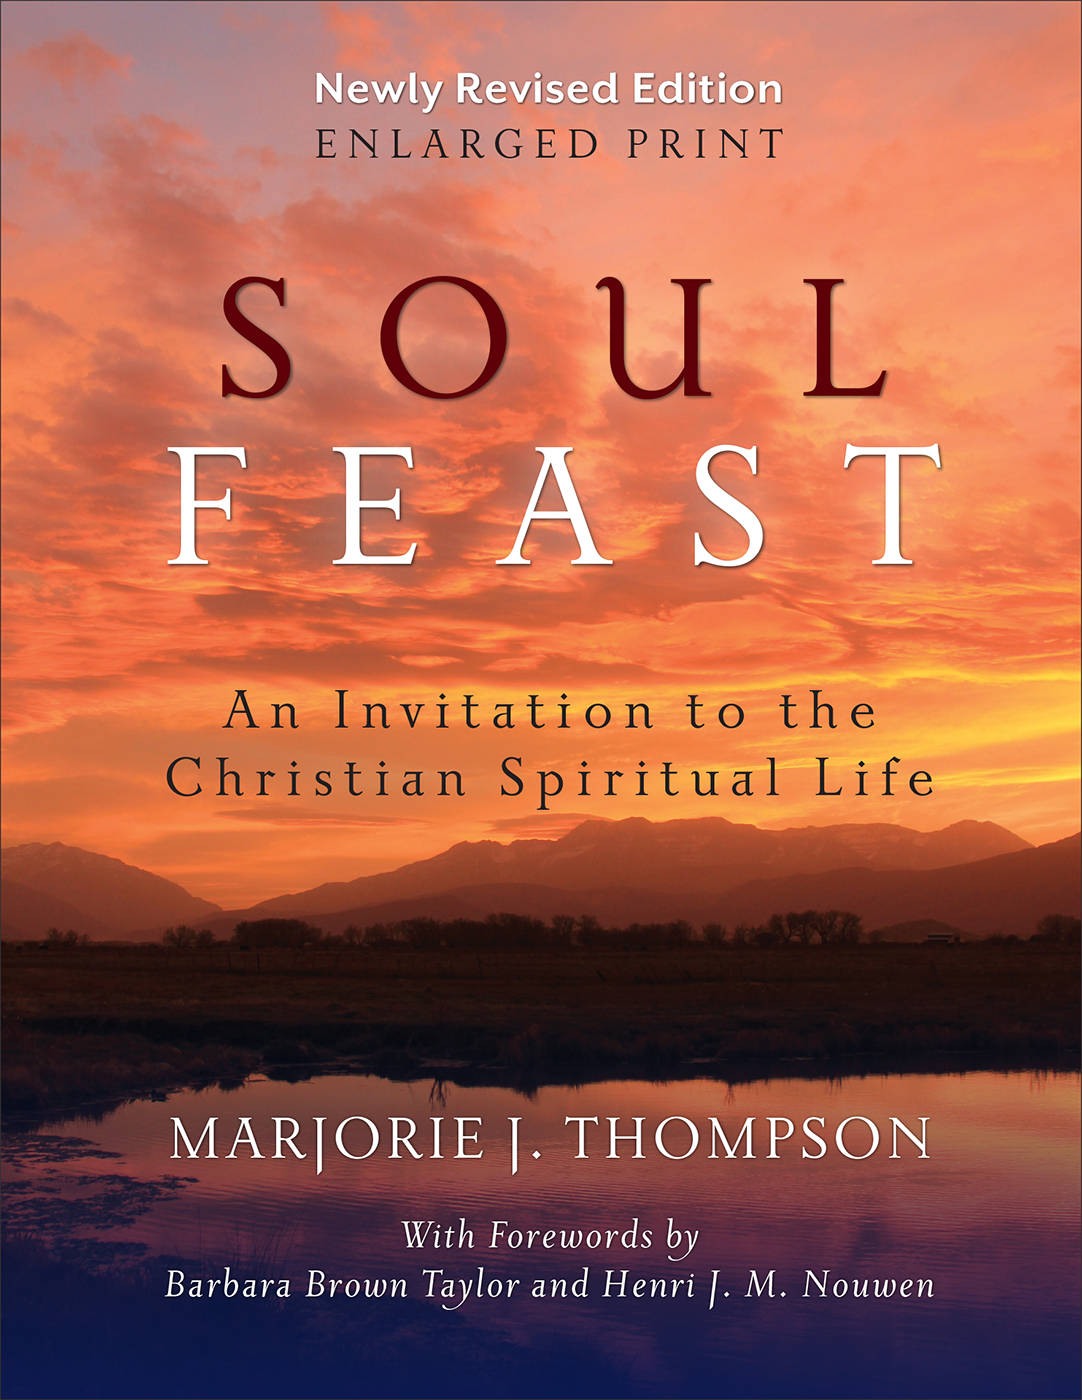 Coloring book for adults for pc - Soul Feast Newly Revised Edition Enlarged Print